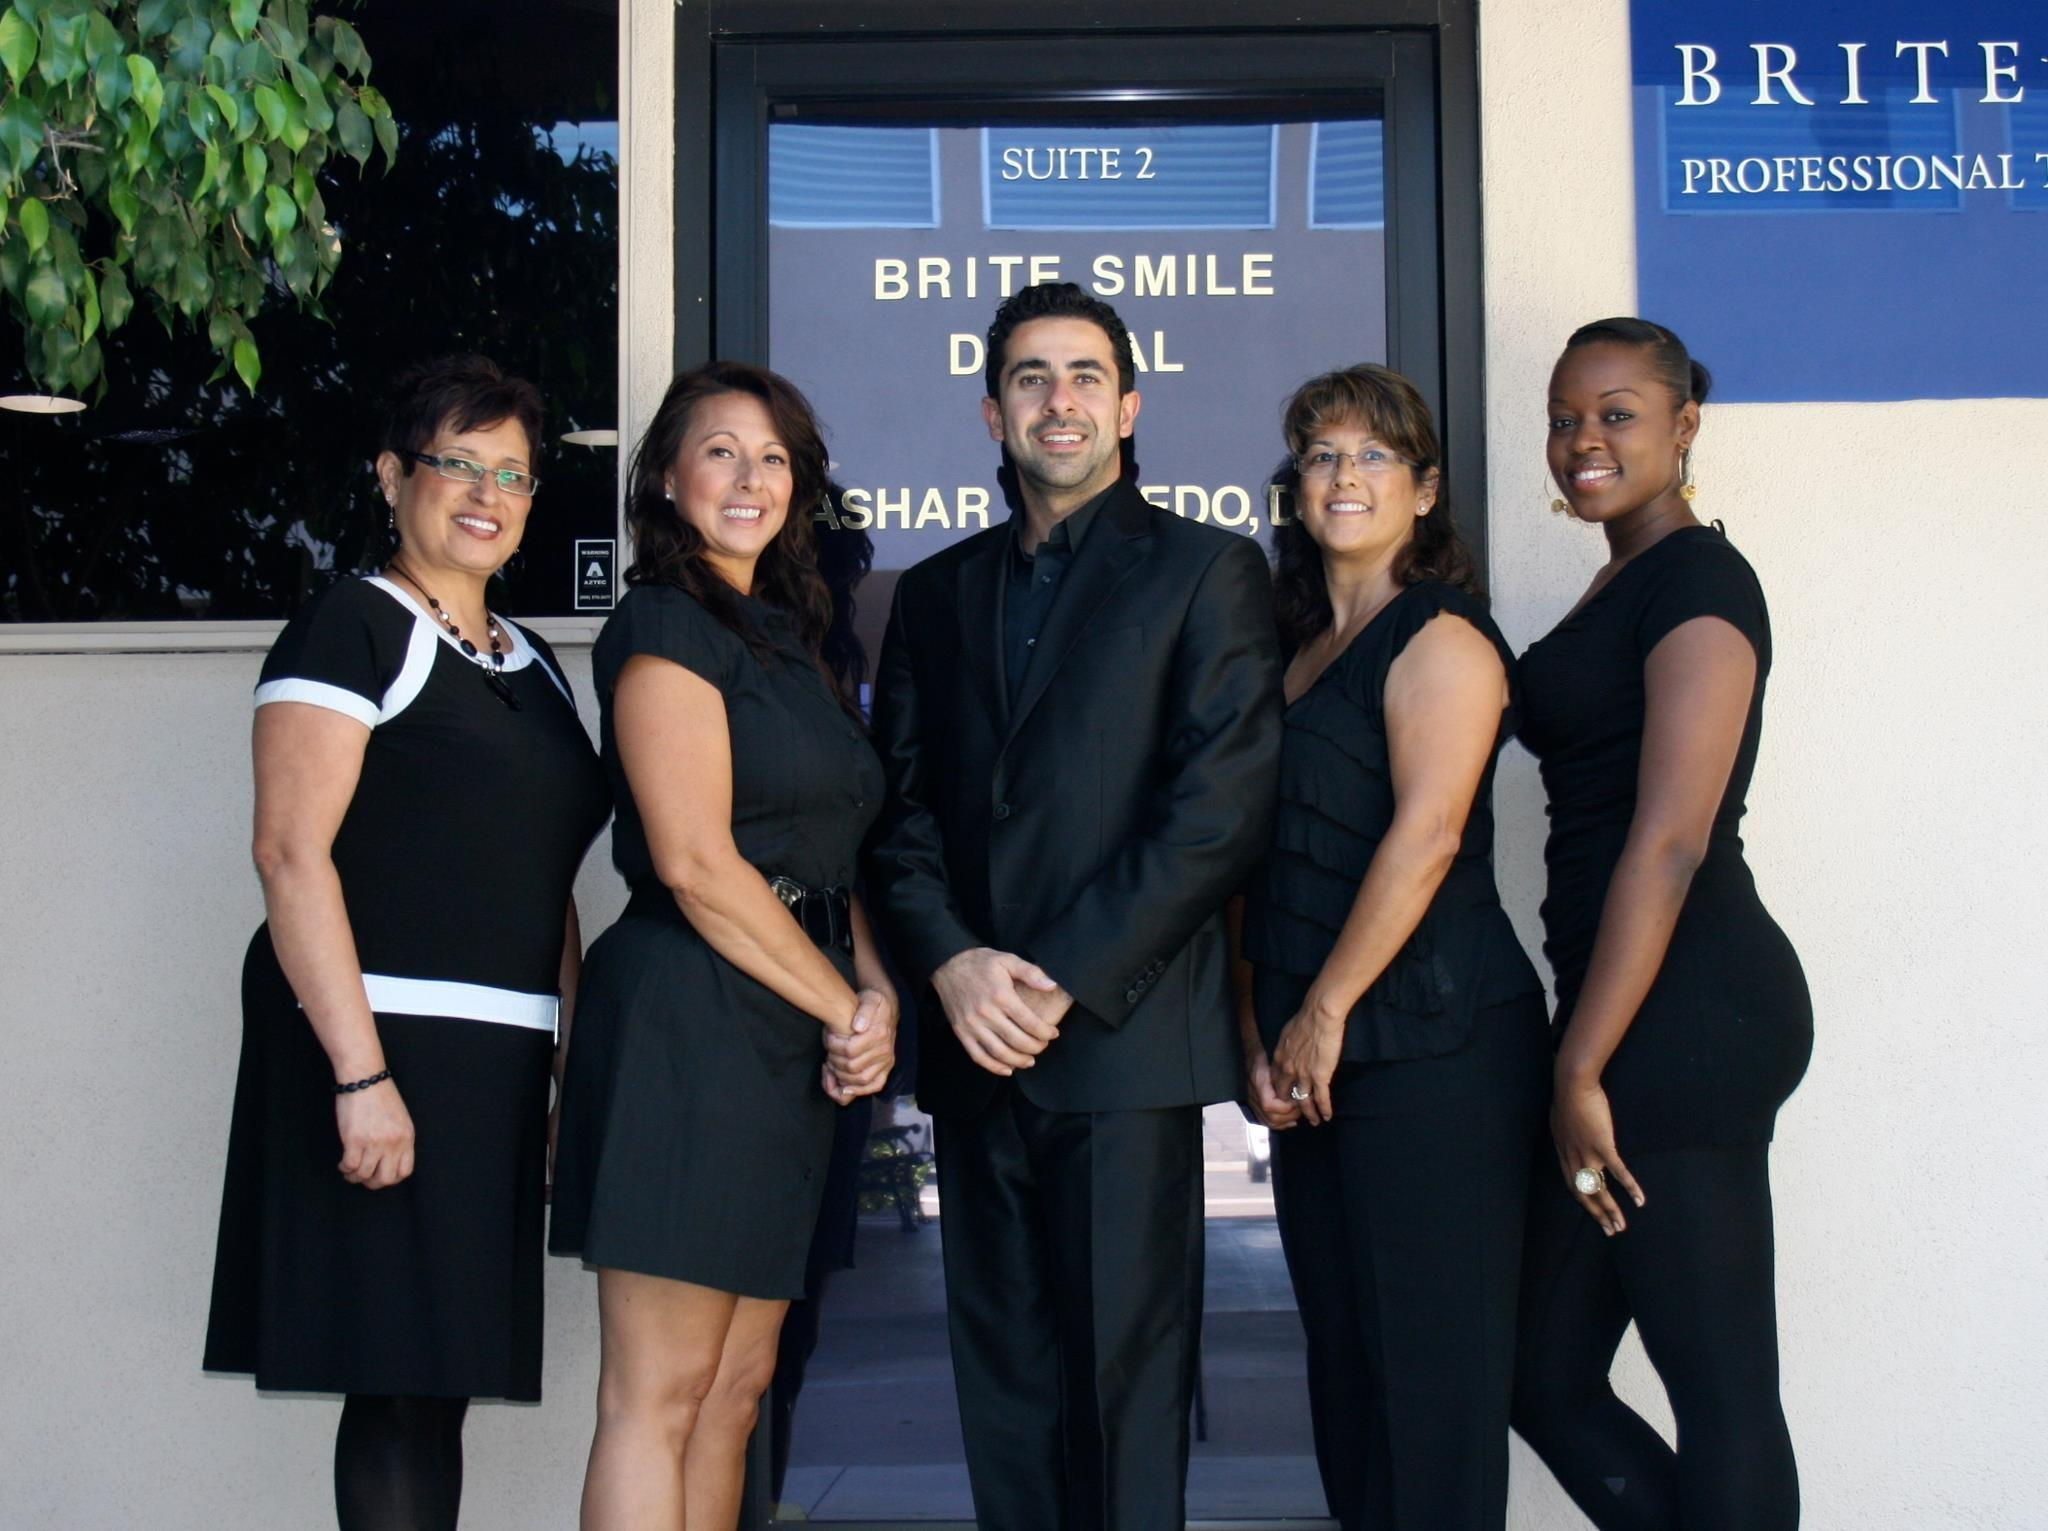 Brite Smile Dental